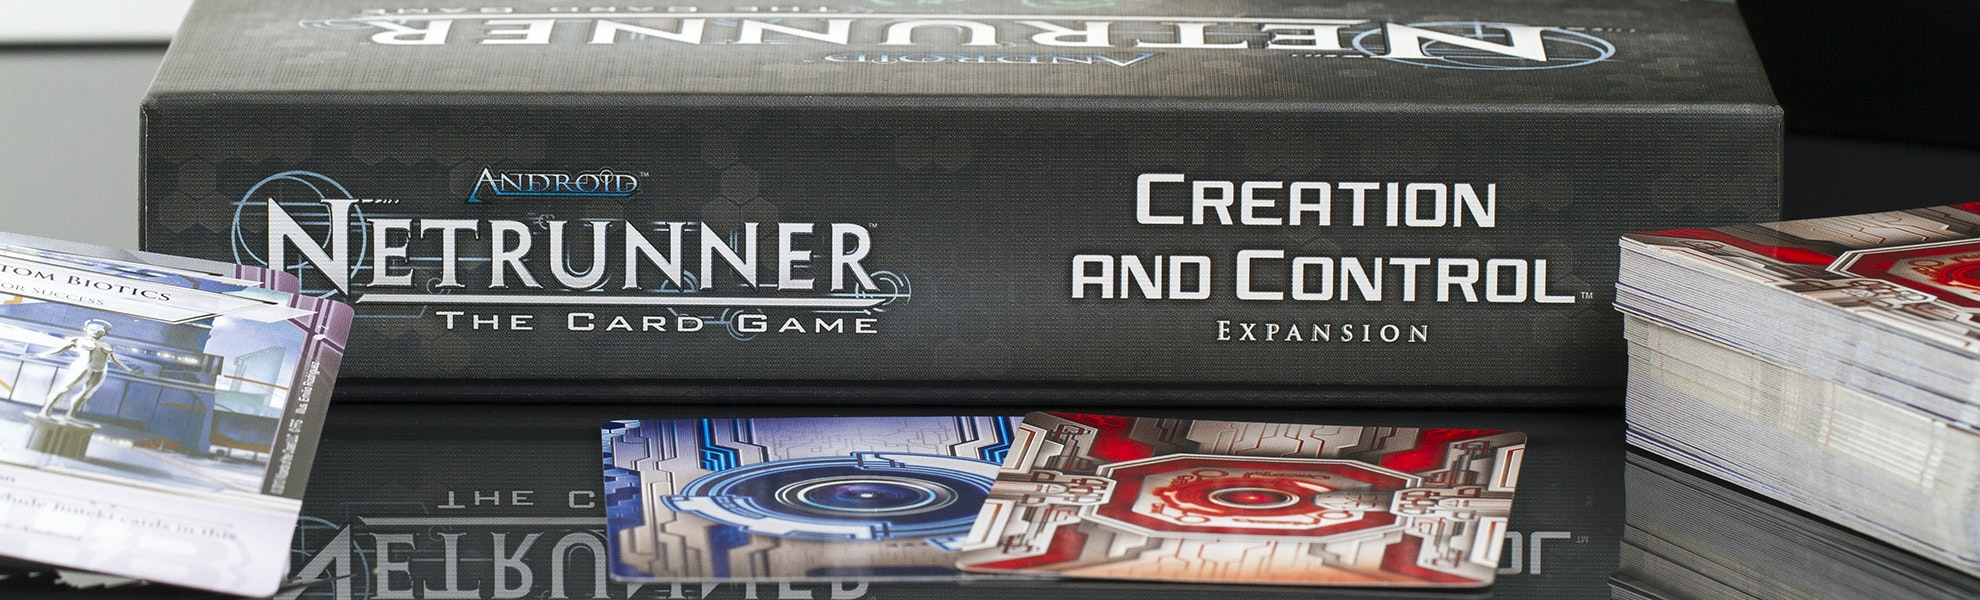 Android: Netrunner Creation and Control